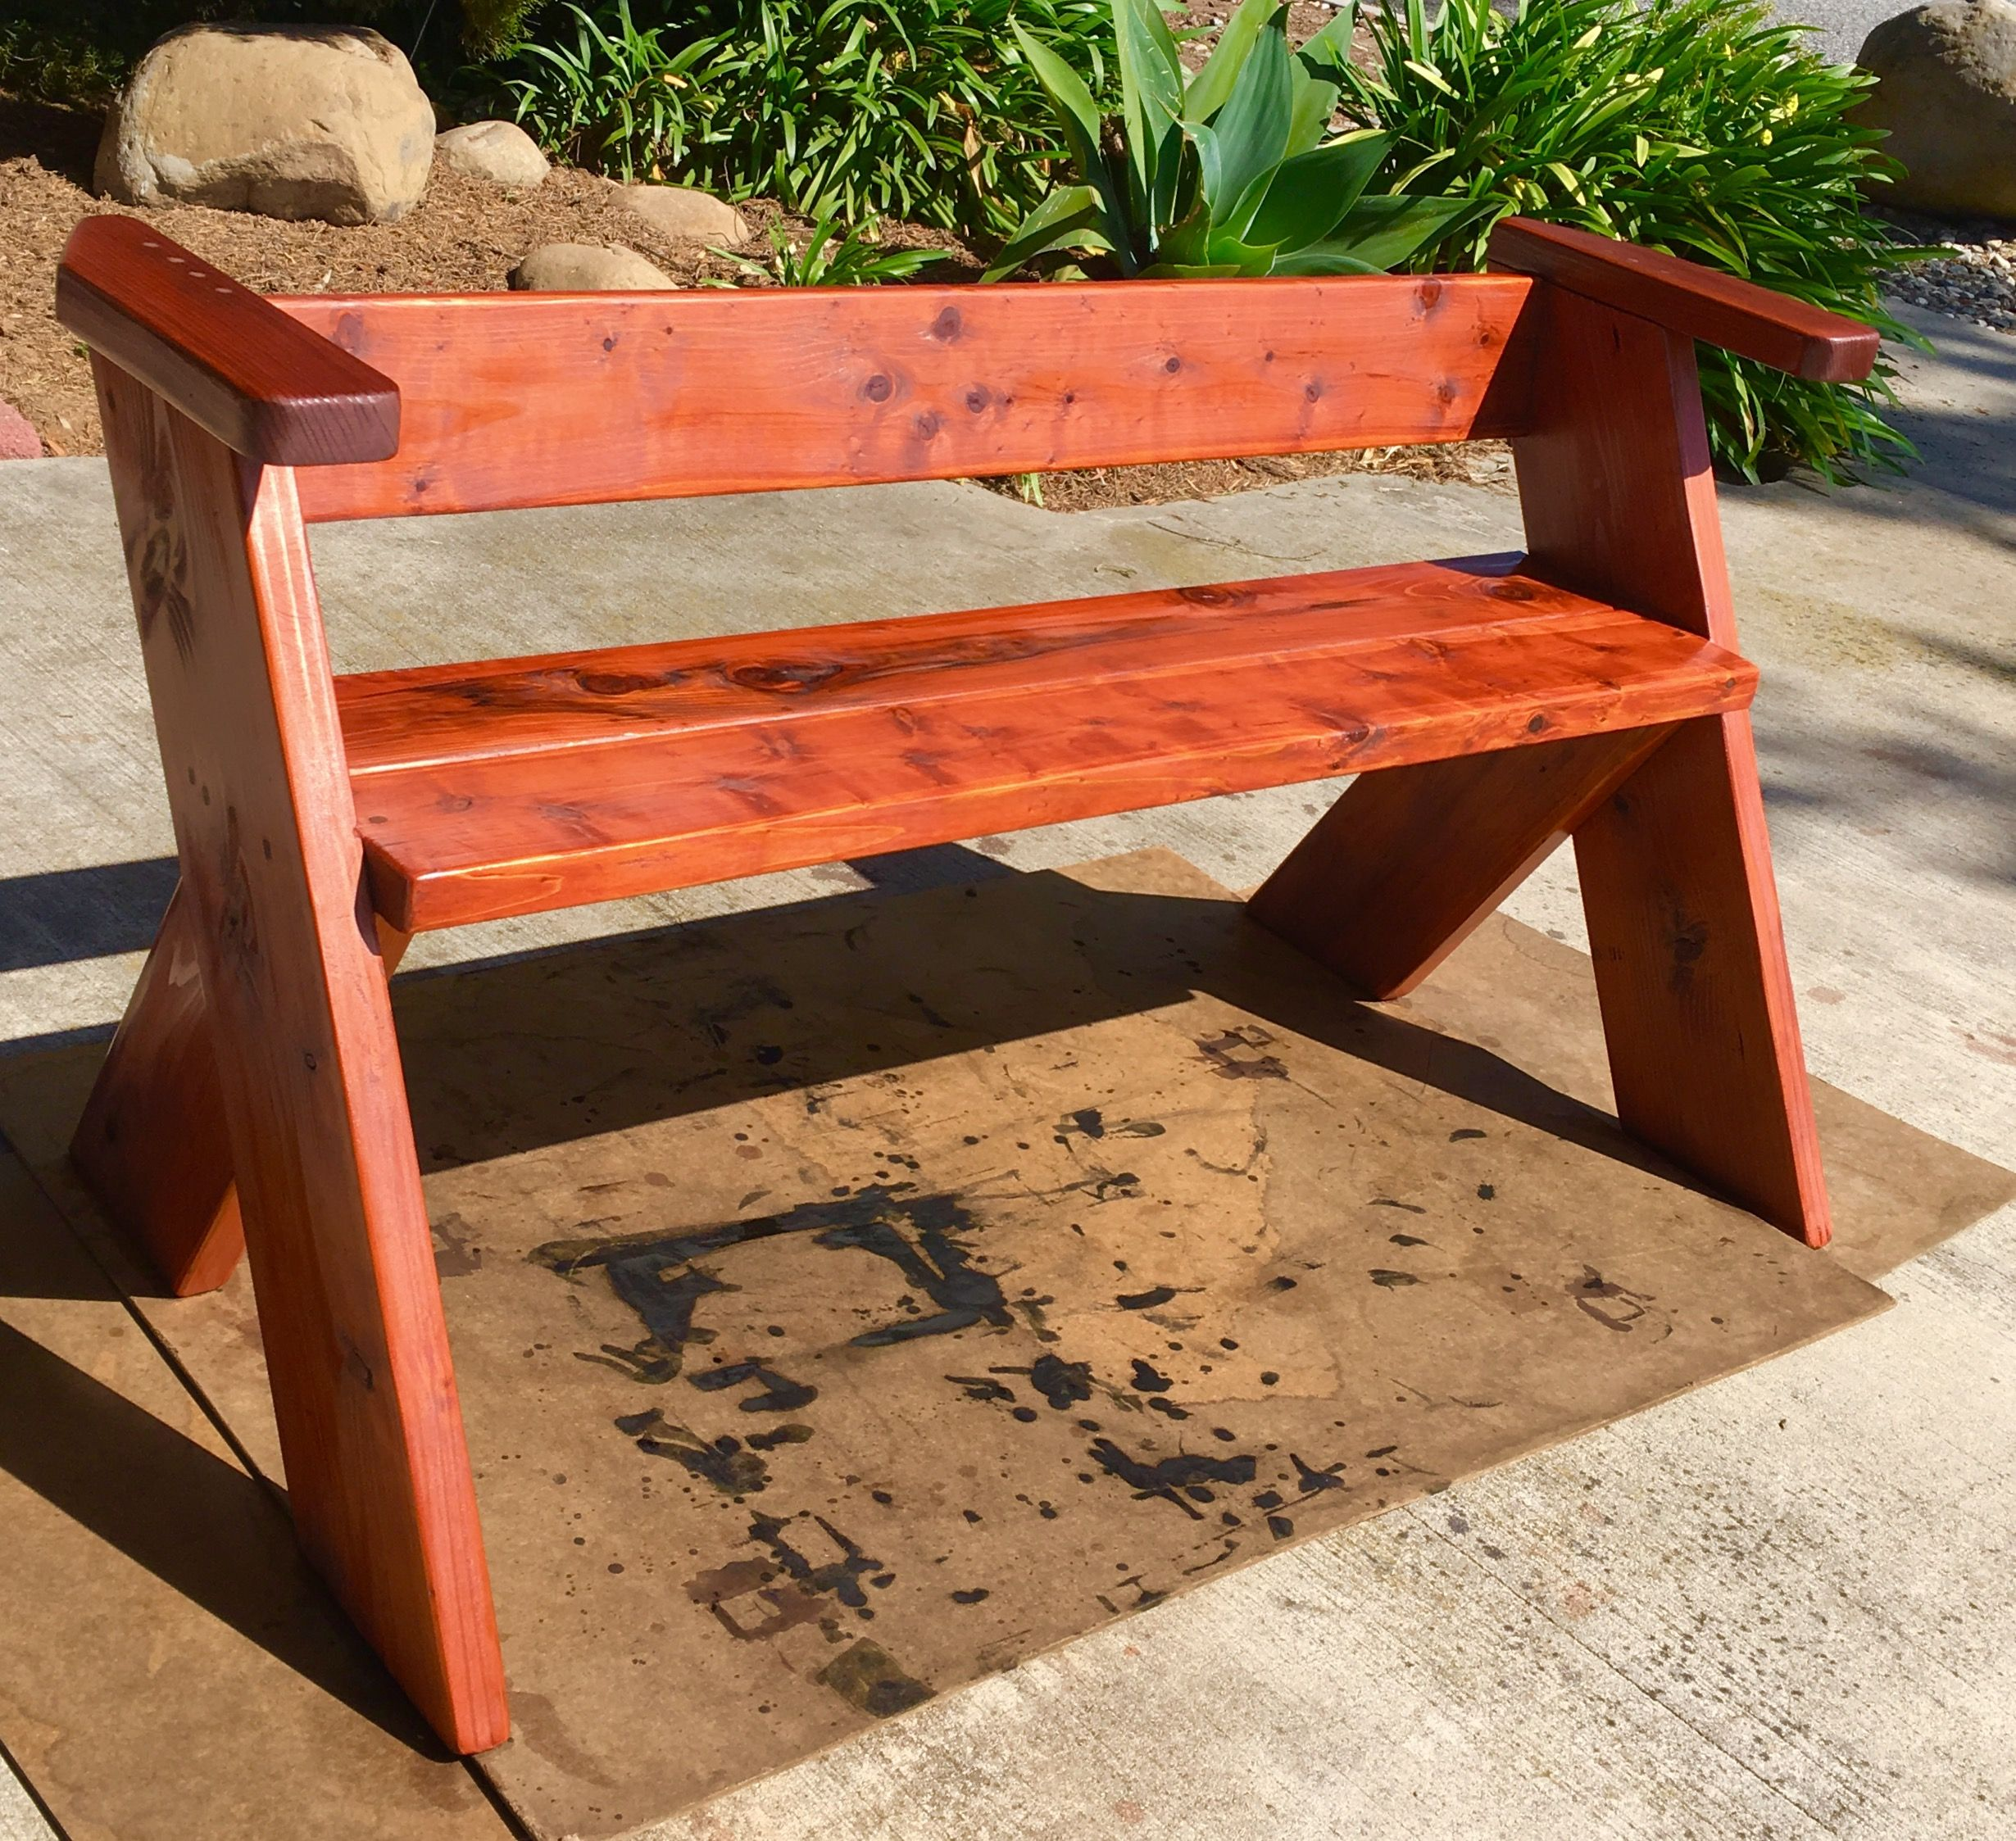 Bocce Ball Bench Low Back With Arm Rests Redwood With Superdeck 1905 Trans Stain Gg Colson Diy Bench Outdoor Reclaimed Wood Projects Kids Playground